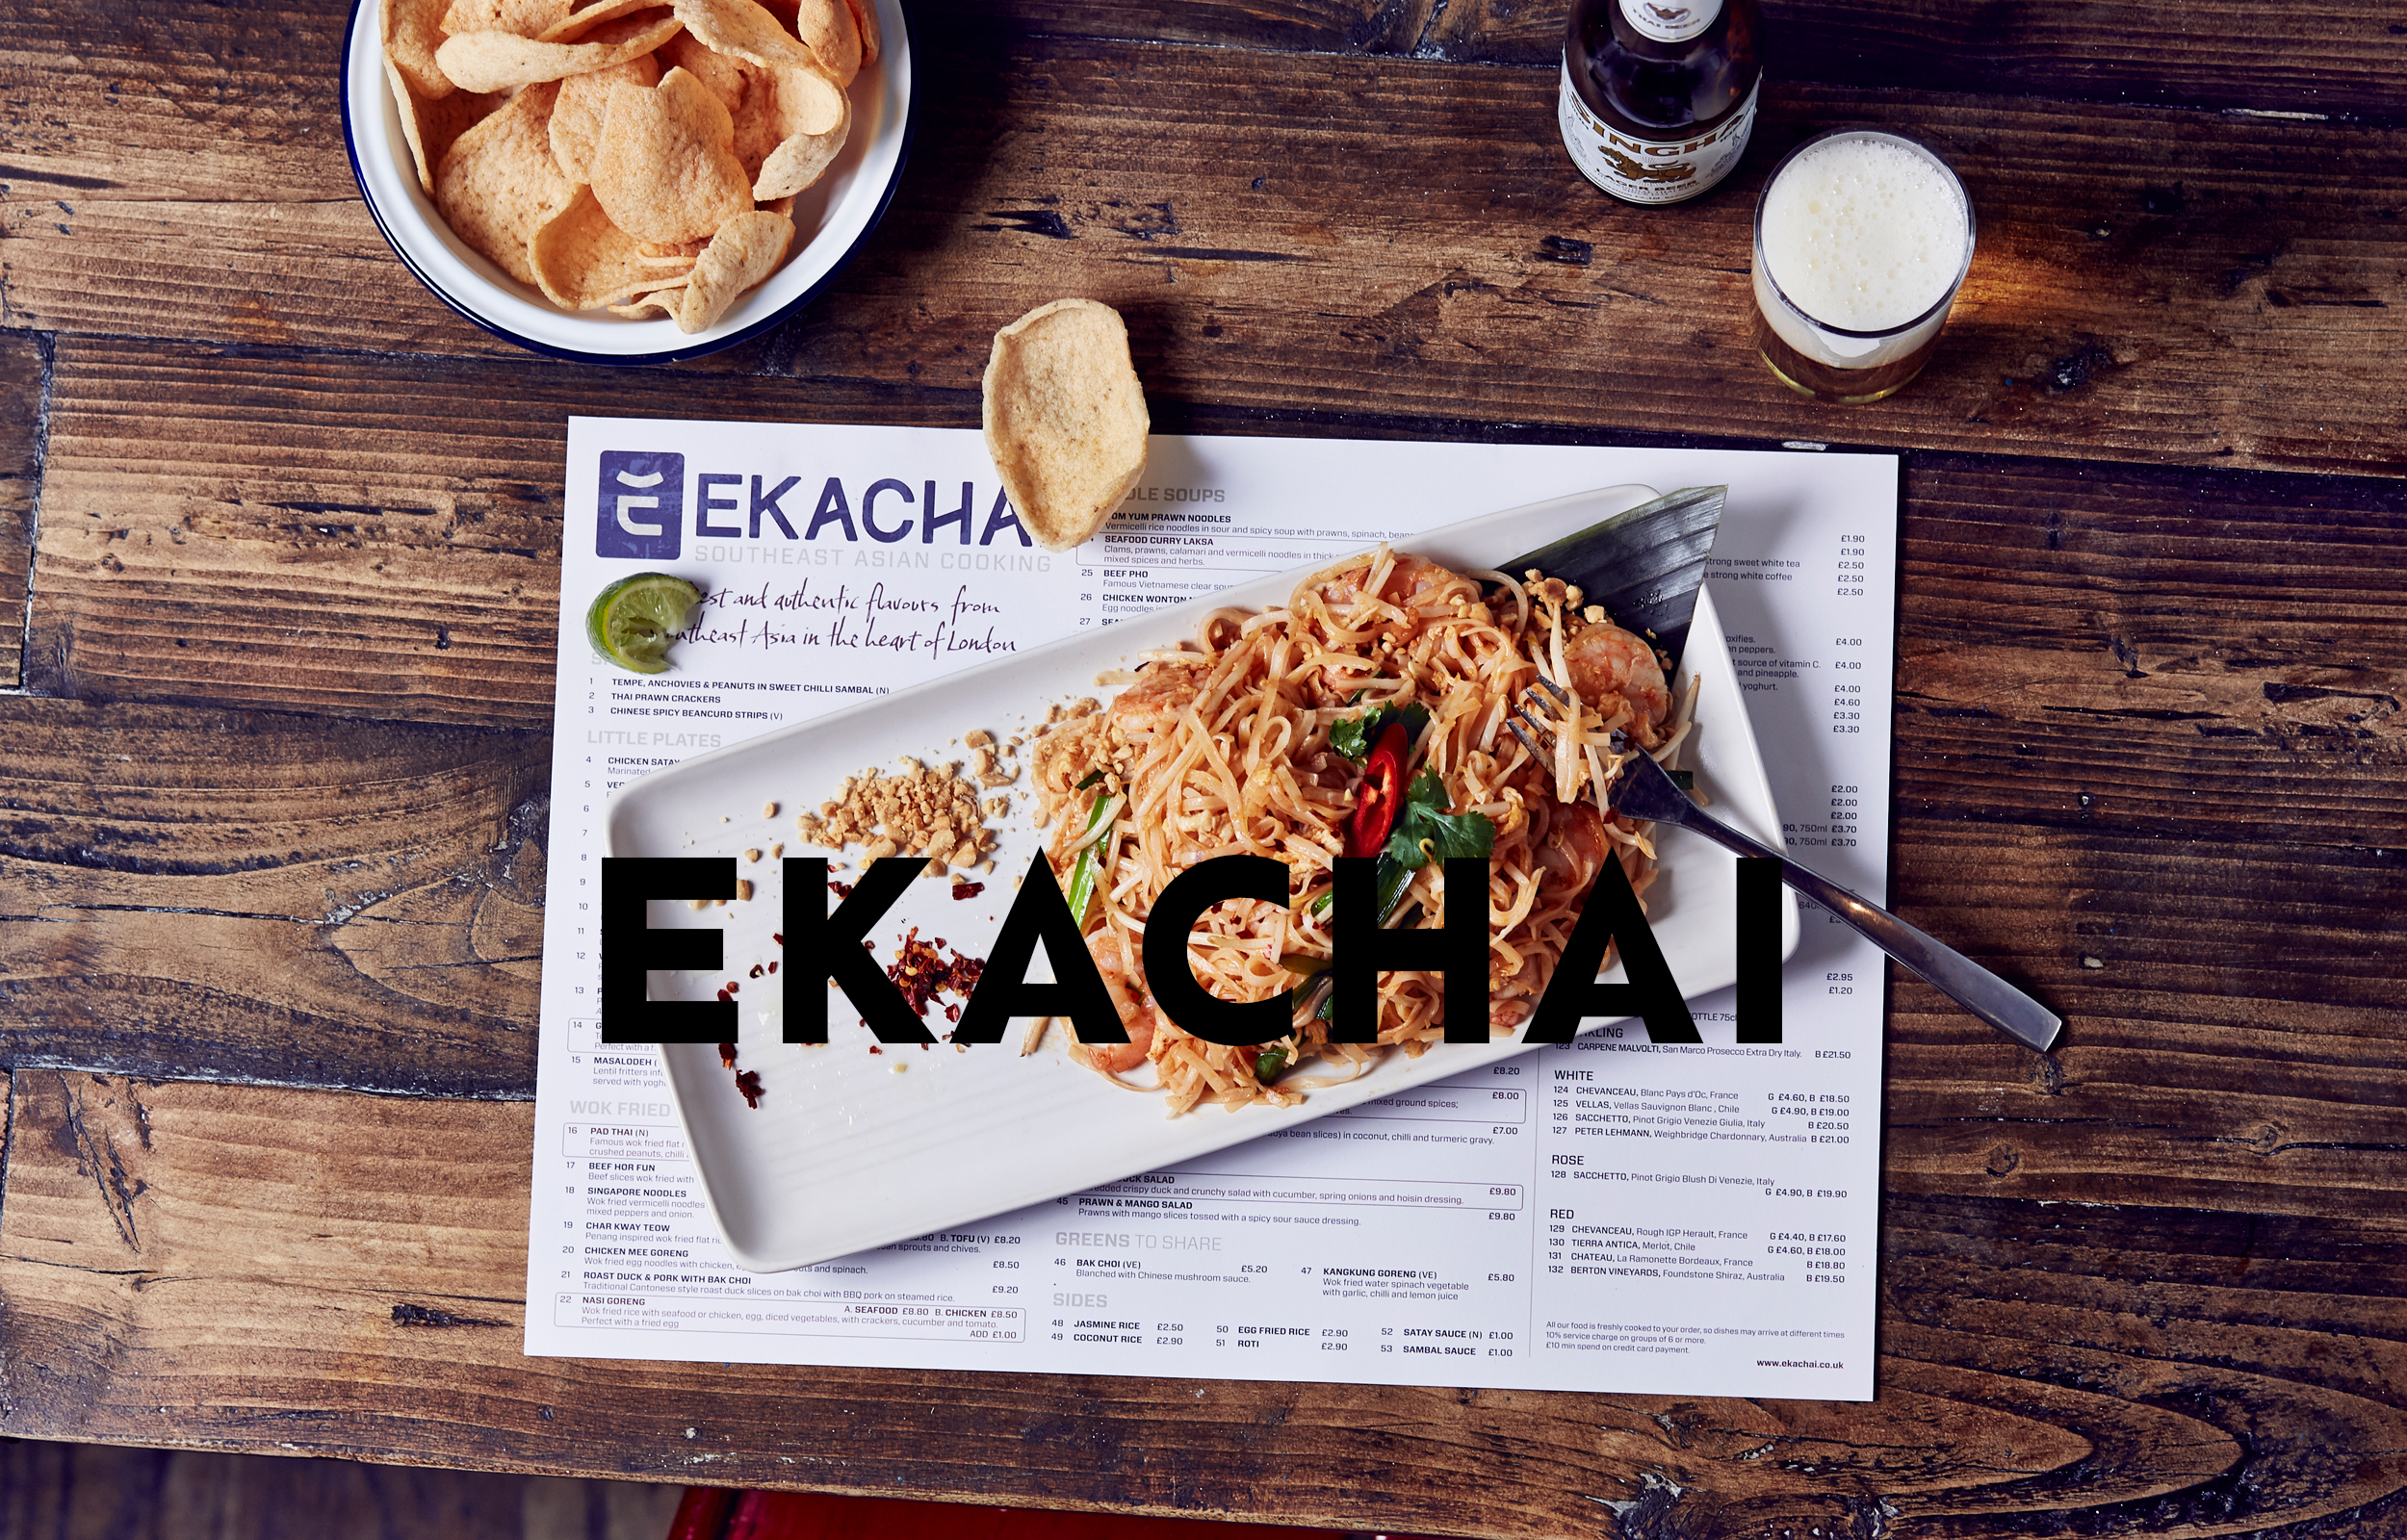 Ekachai-intro-narrative